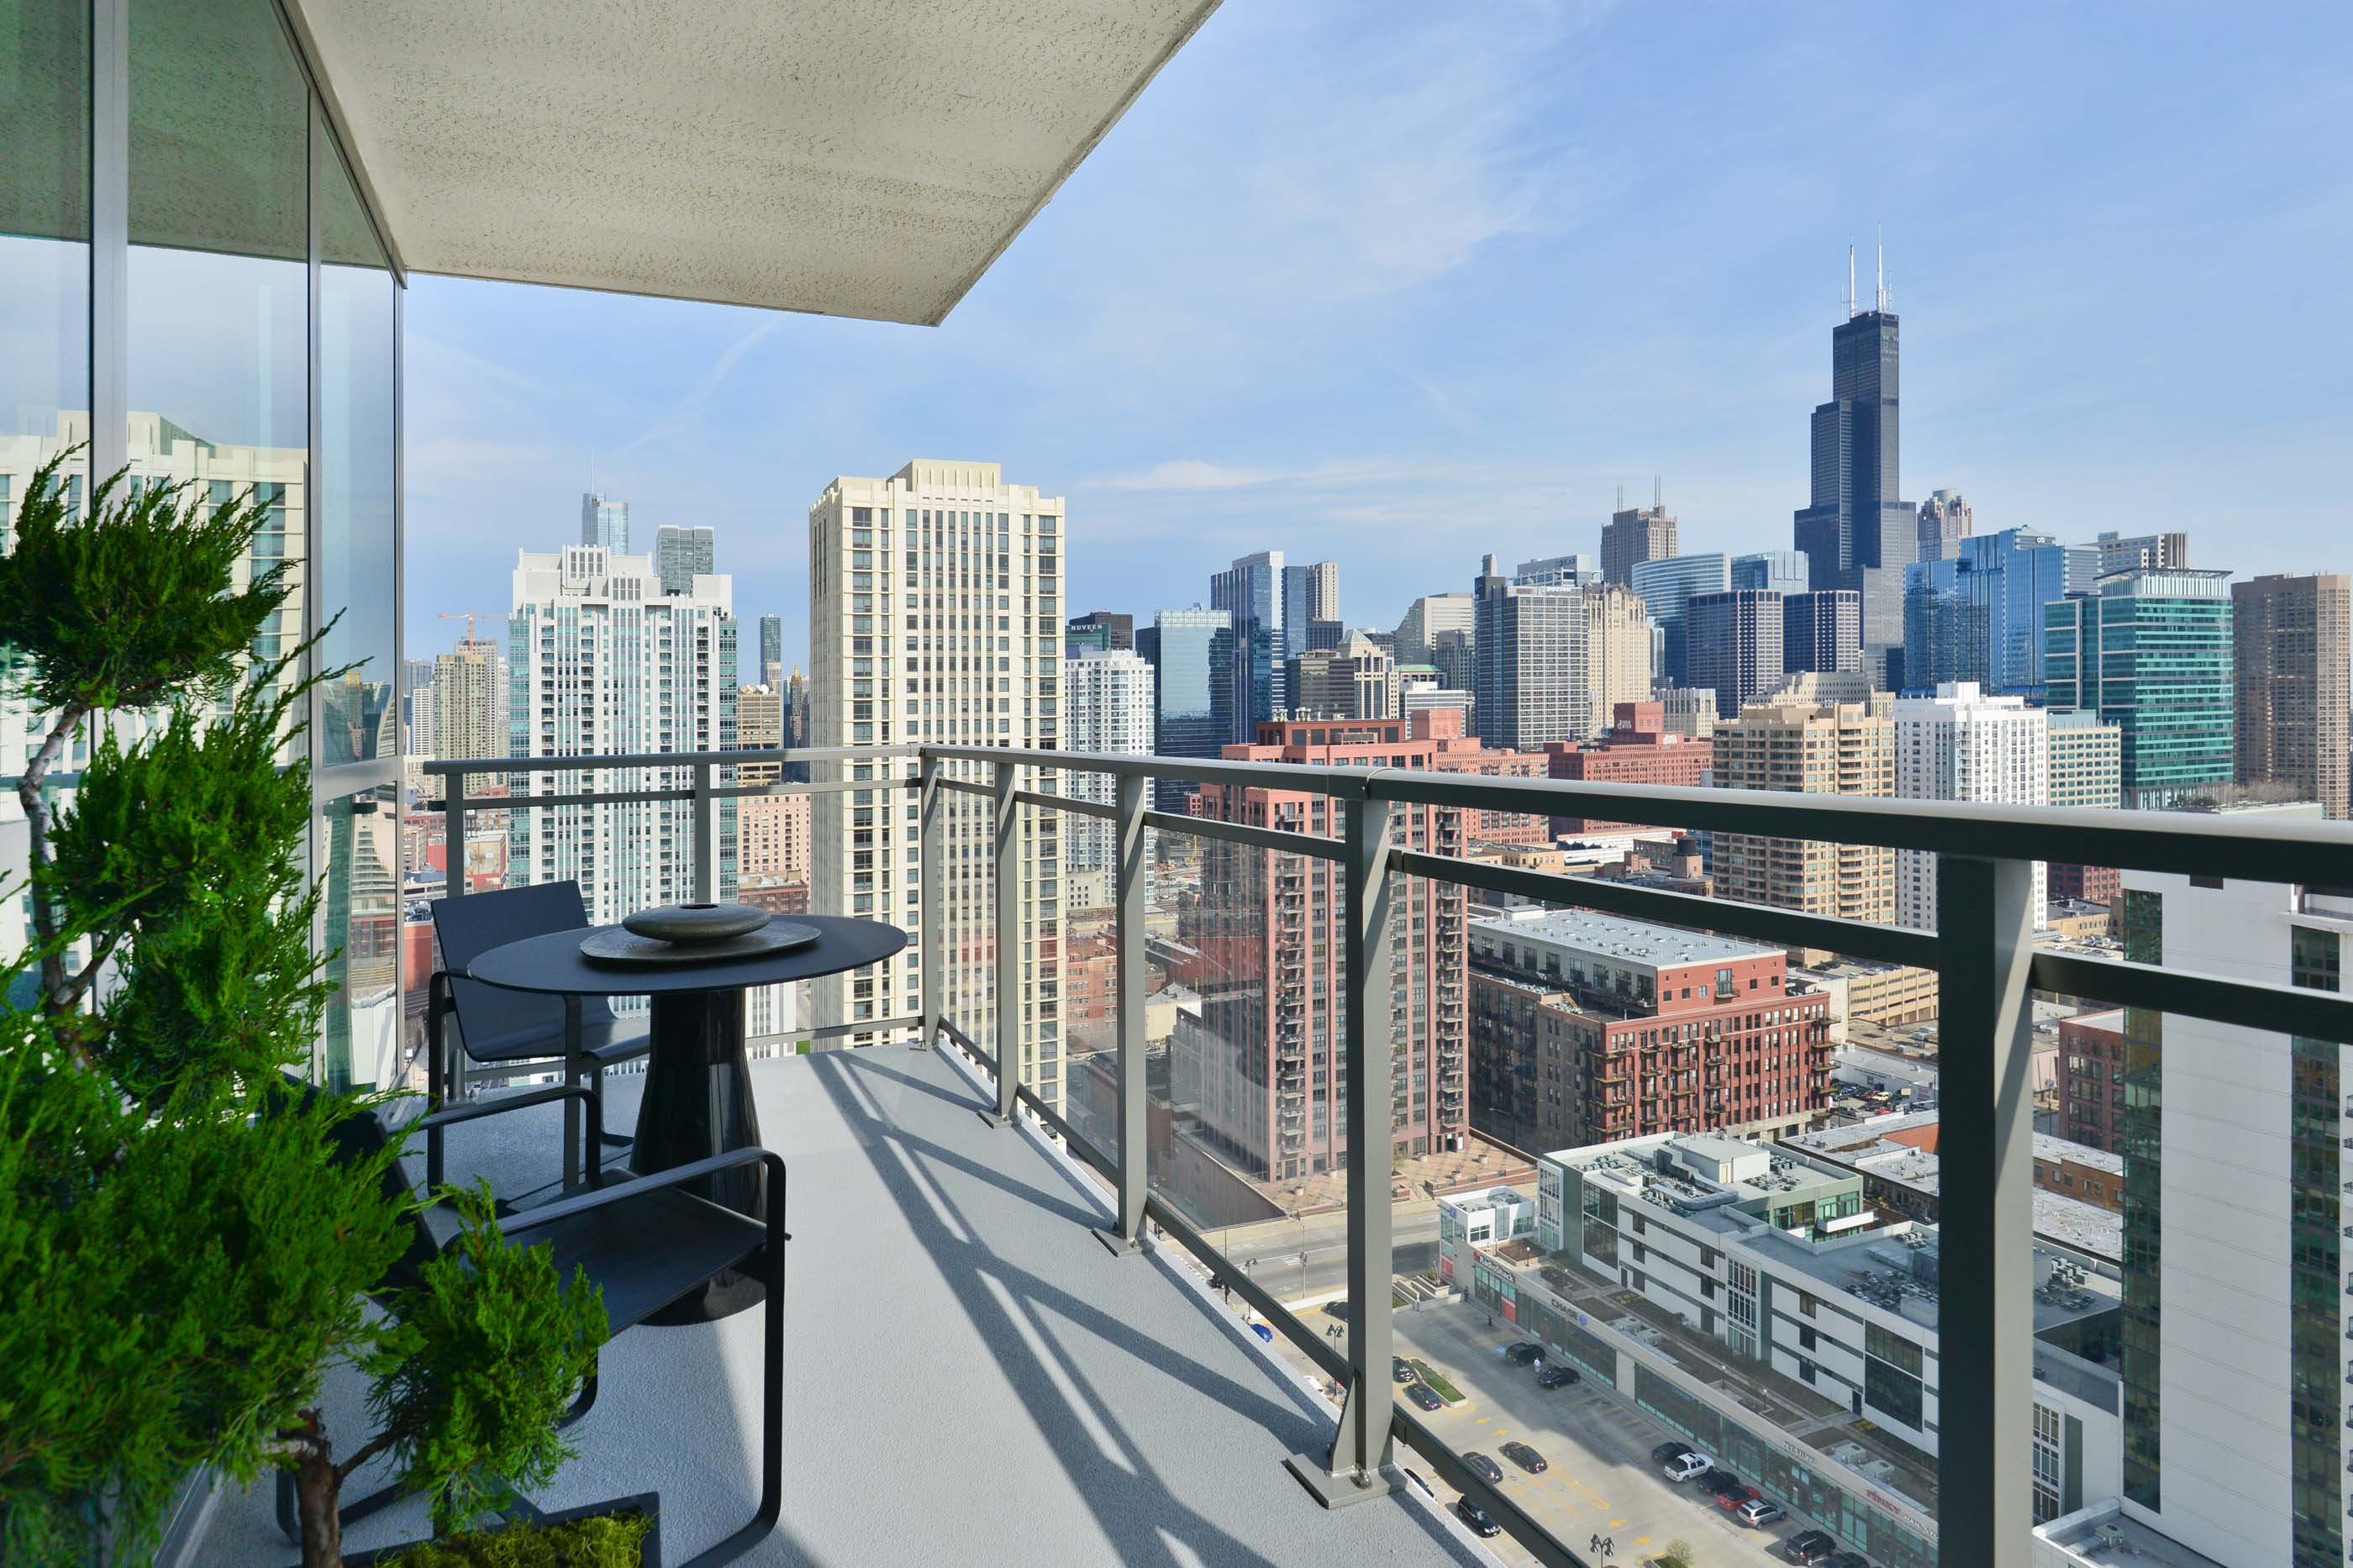 Downtown Chicago Apartment Deals And Finds 4 10 15